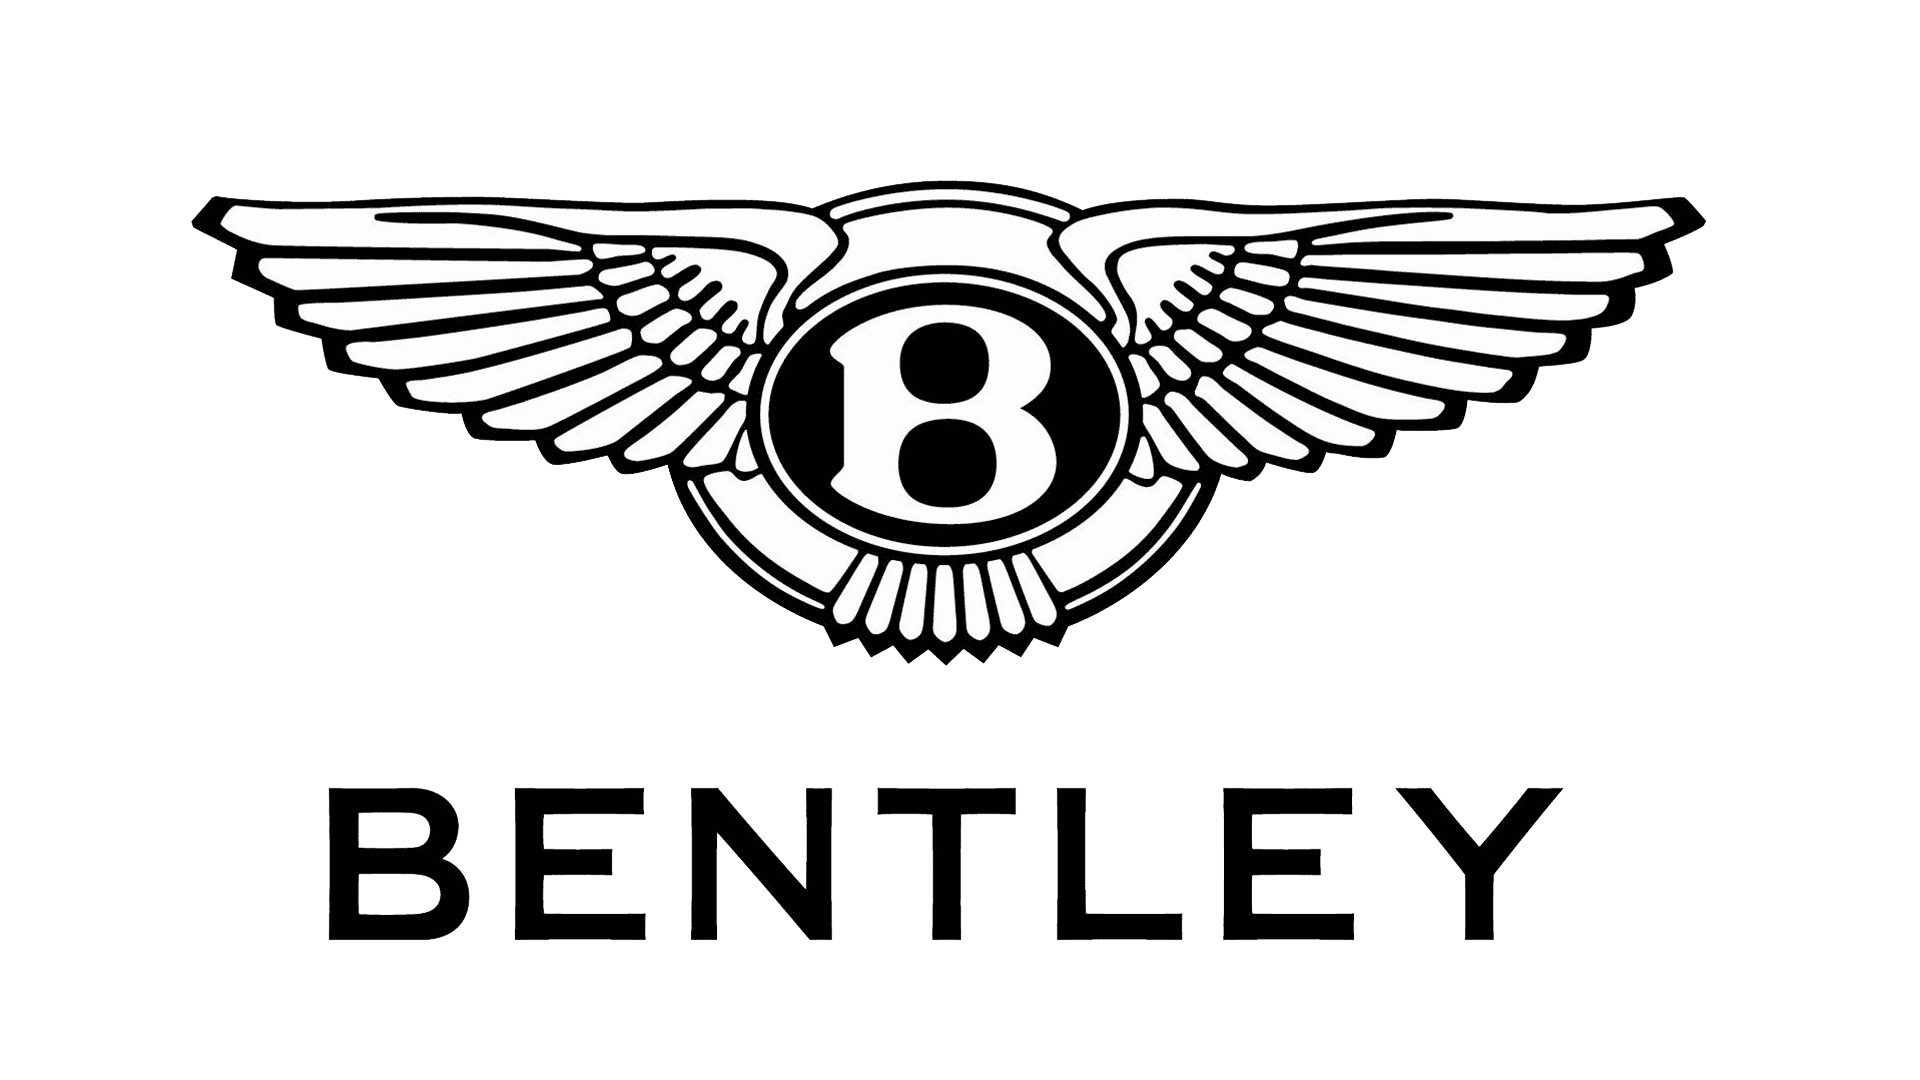 Bentley-symbol-black-1920x1080